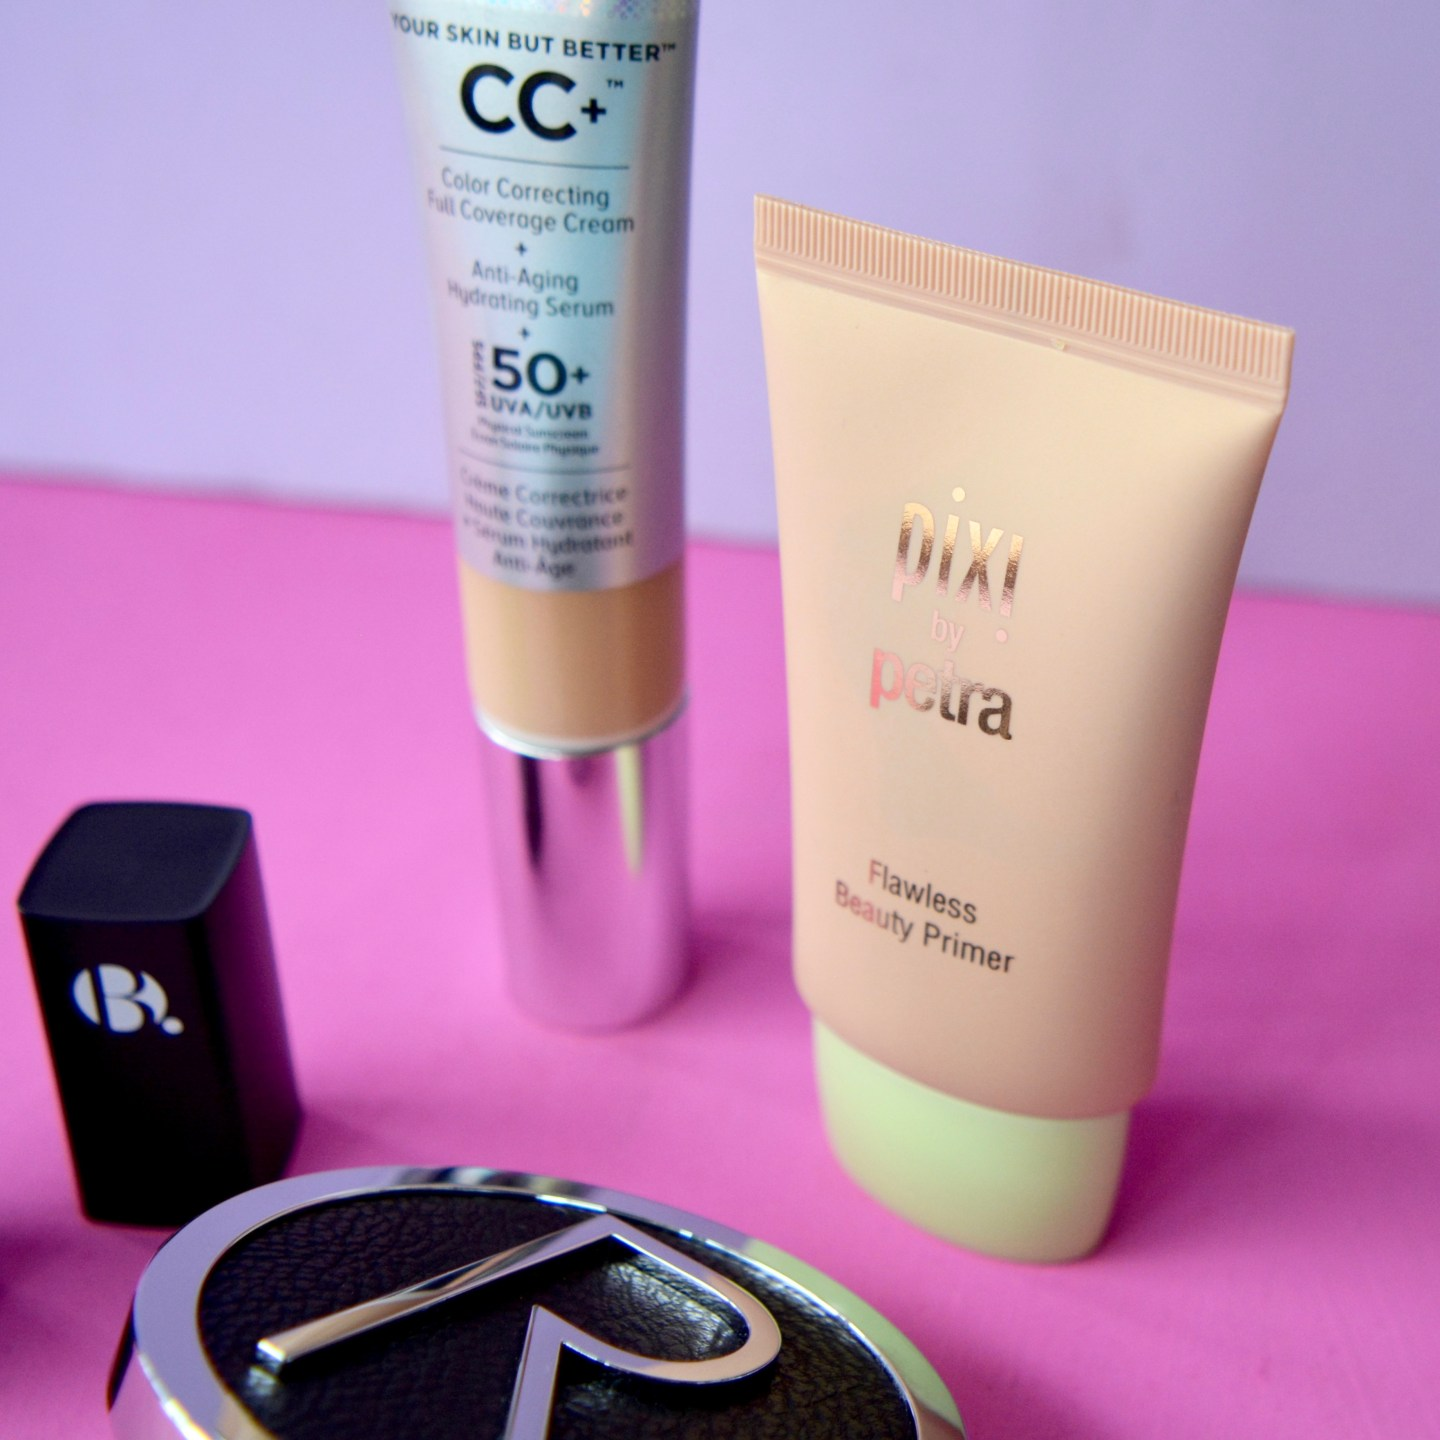 Pixi Flawless Beauty Primer, great for added radiance under make up